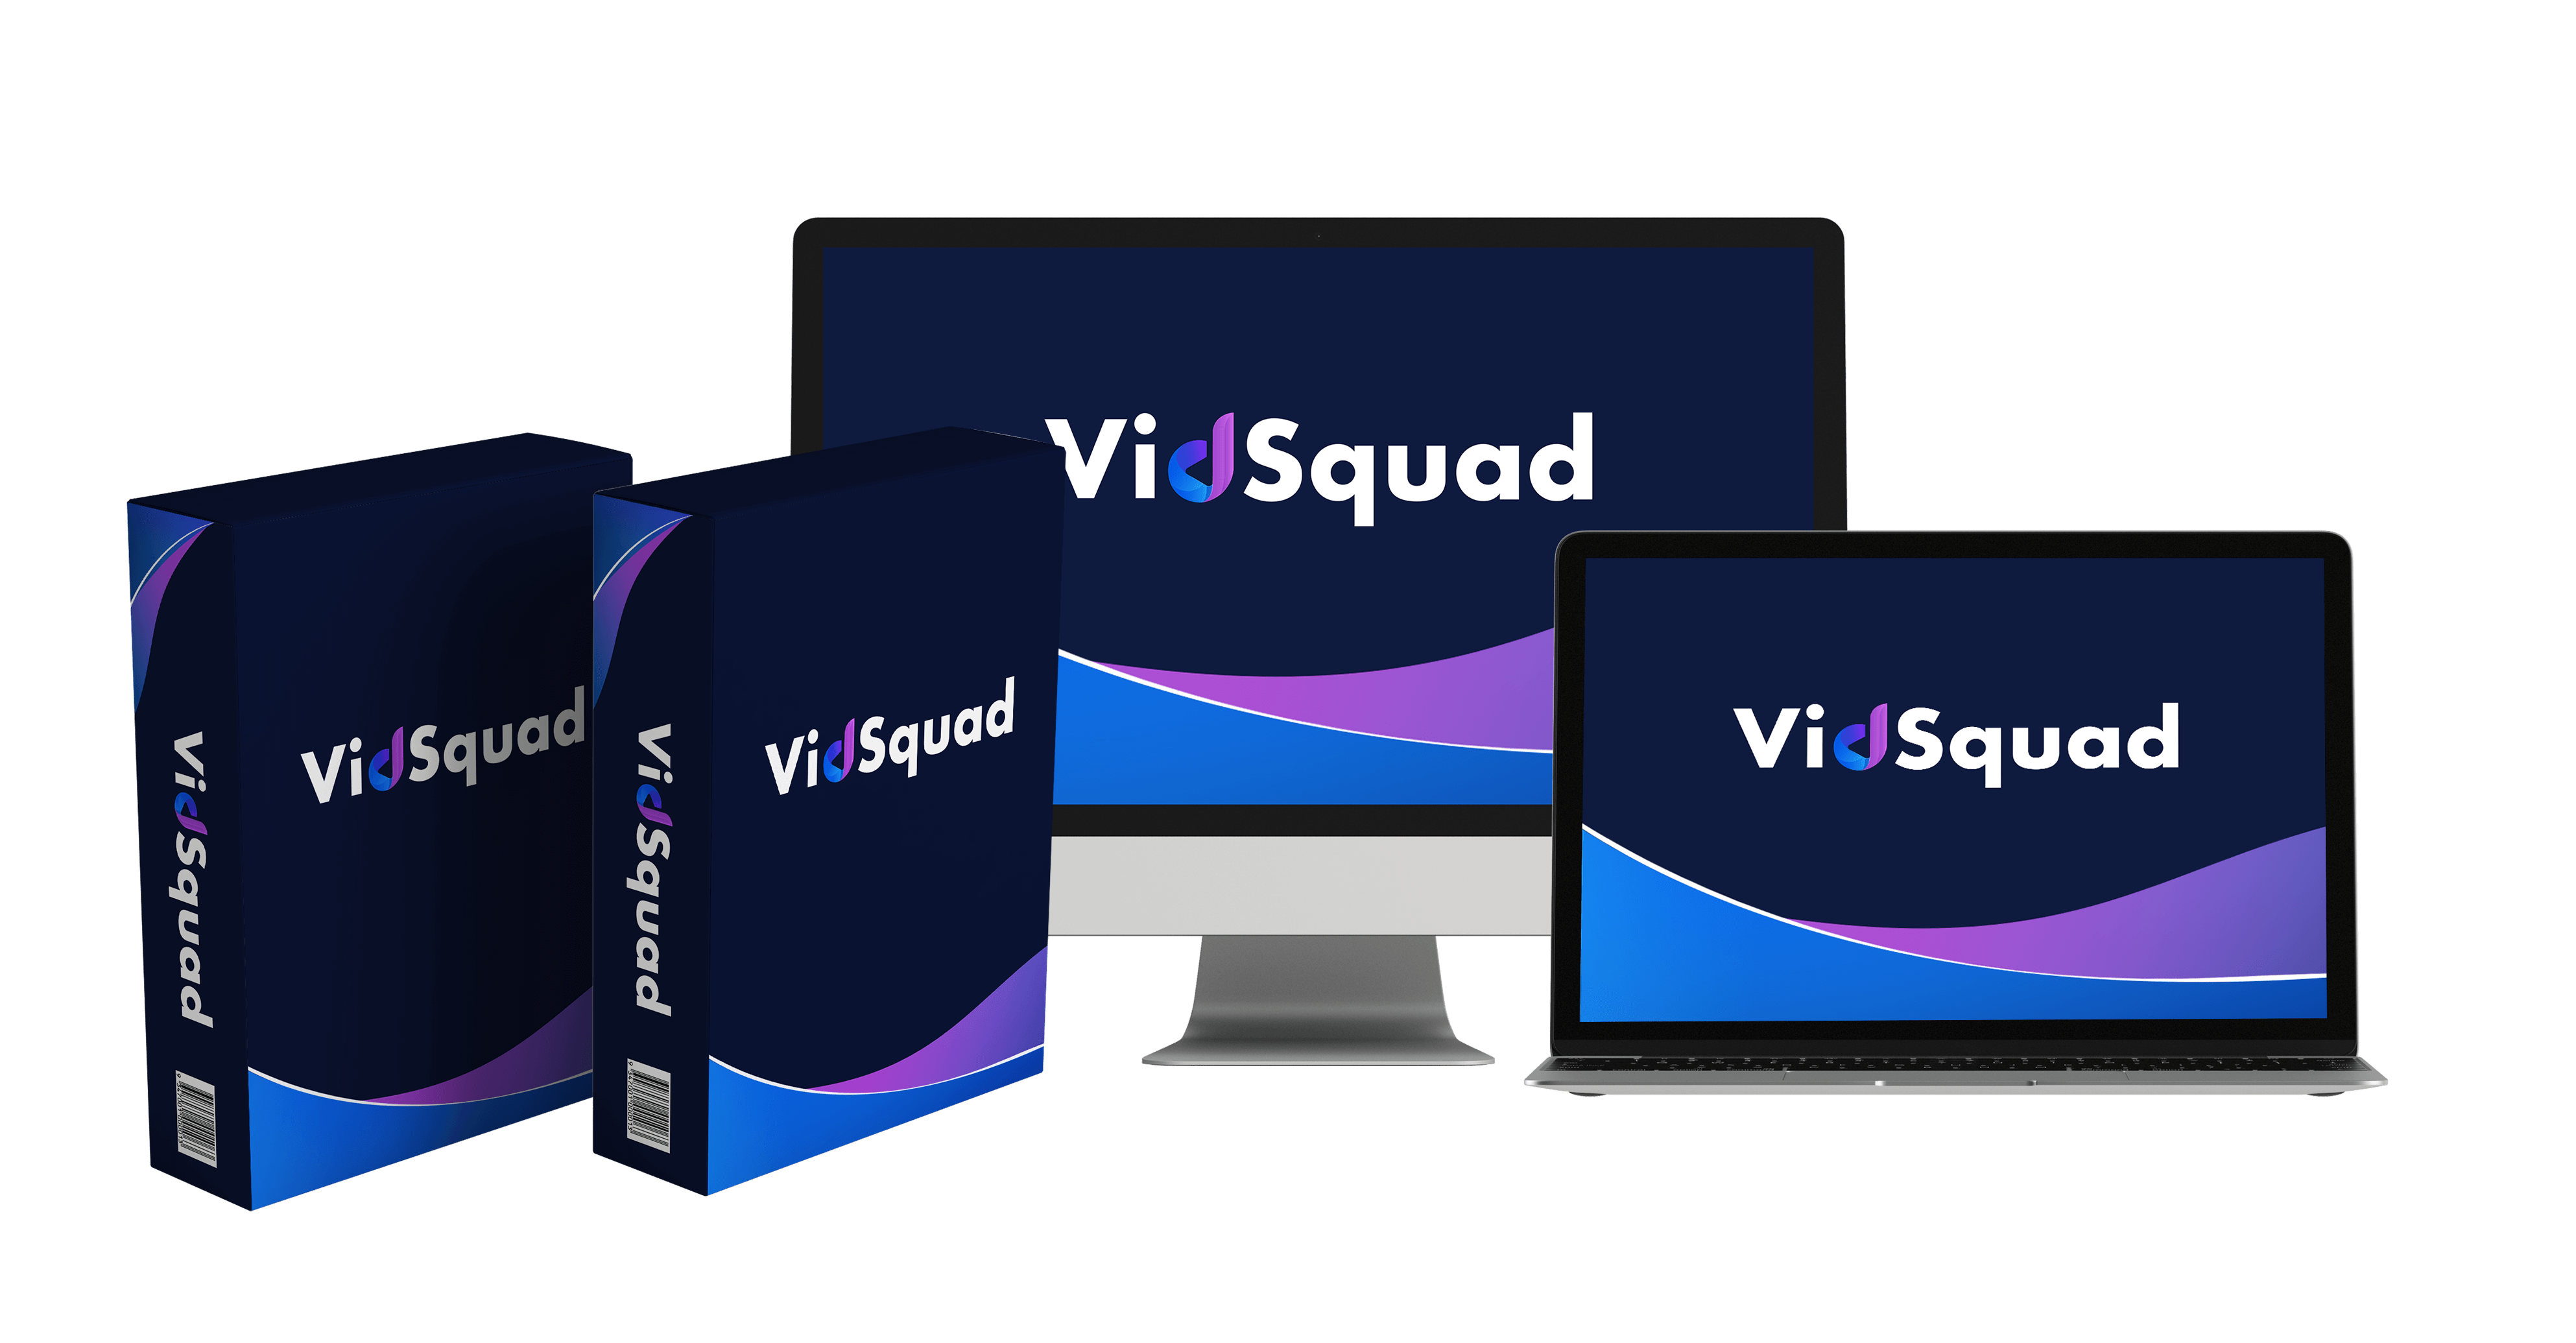 [GET] ImReview Squad – VidSquad + OTO Free Download